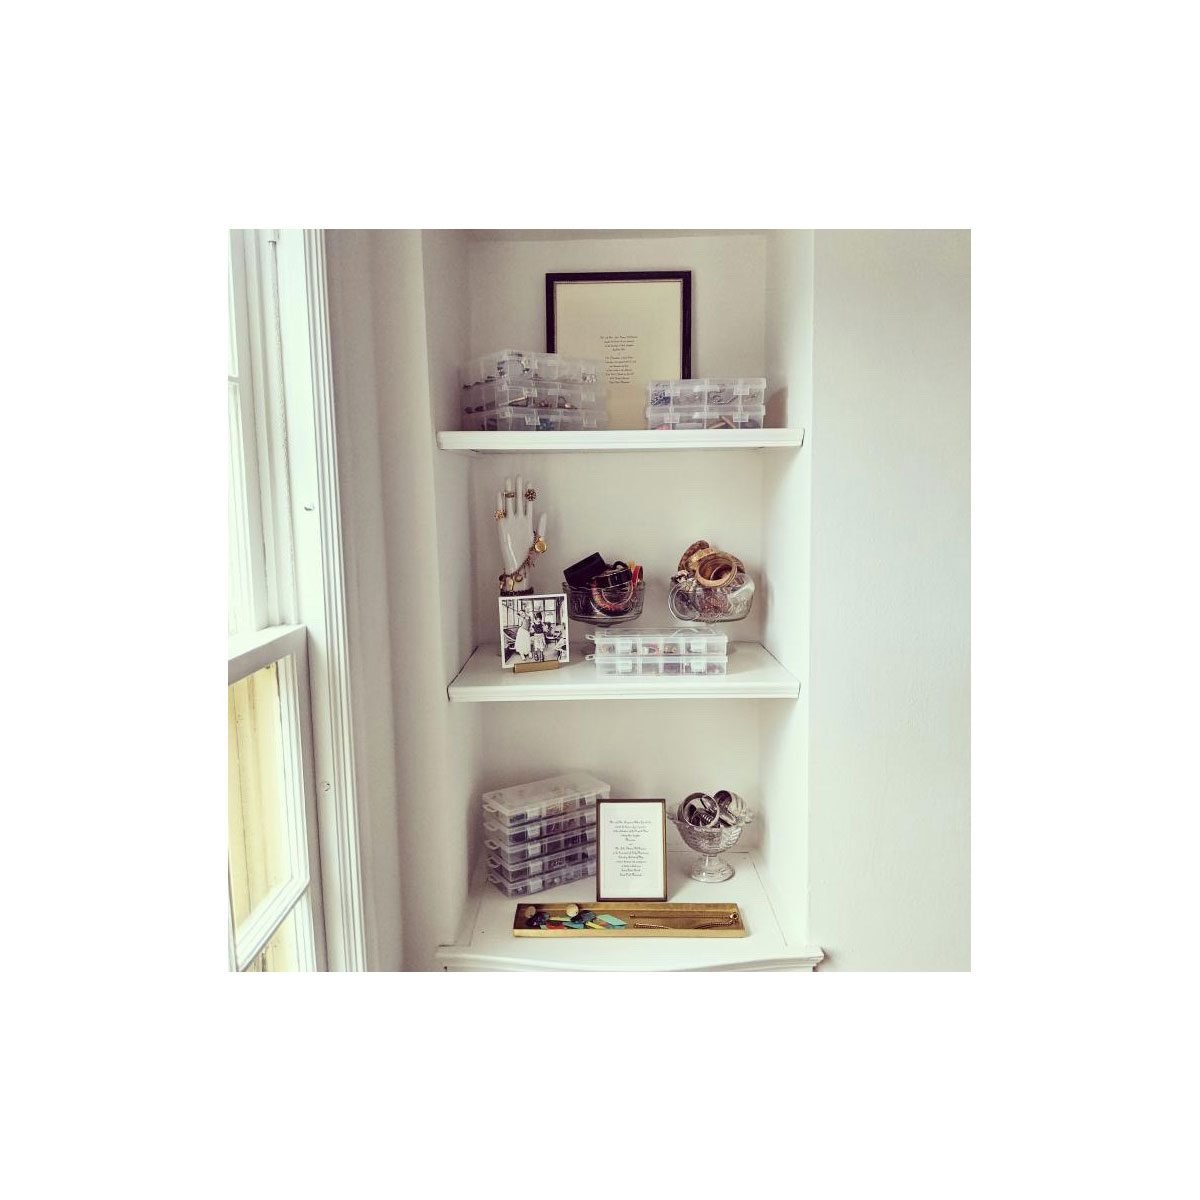 Shelves in a small space